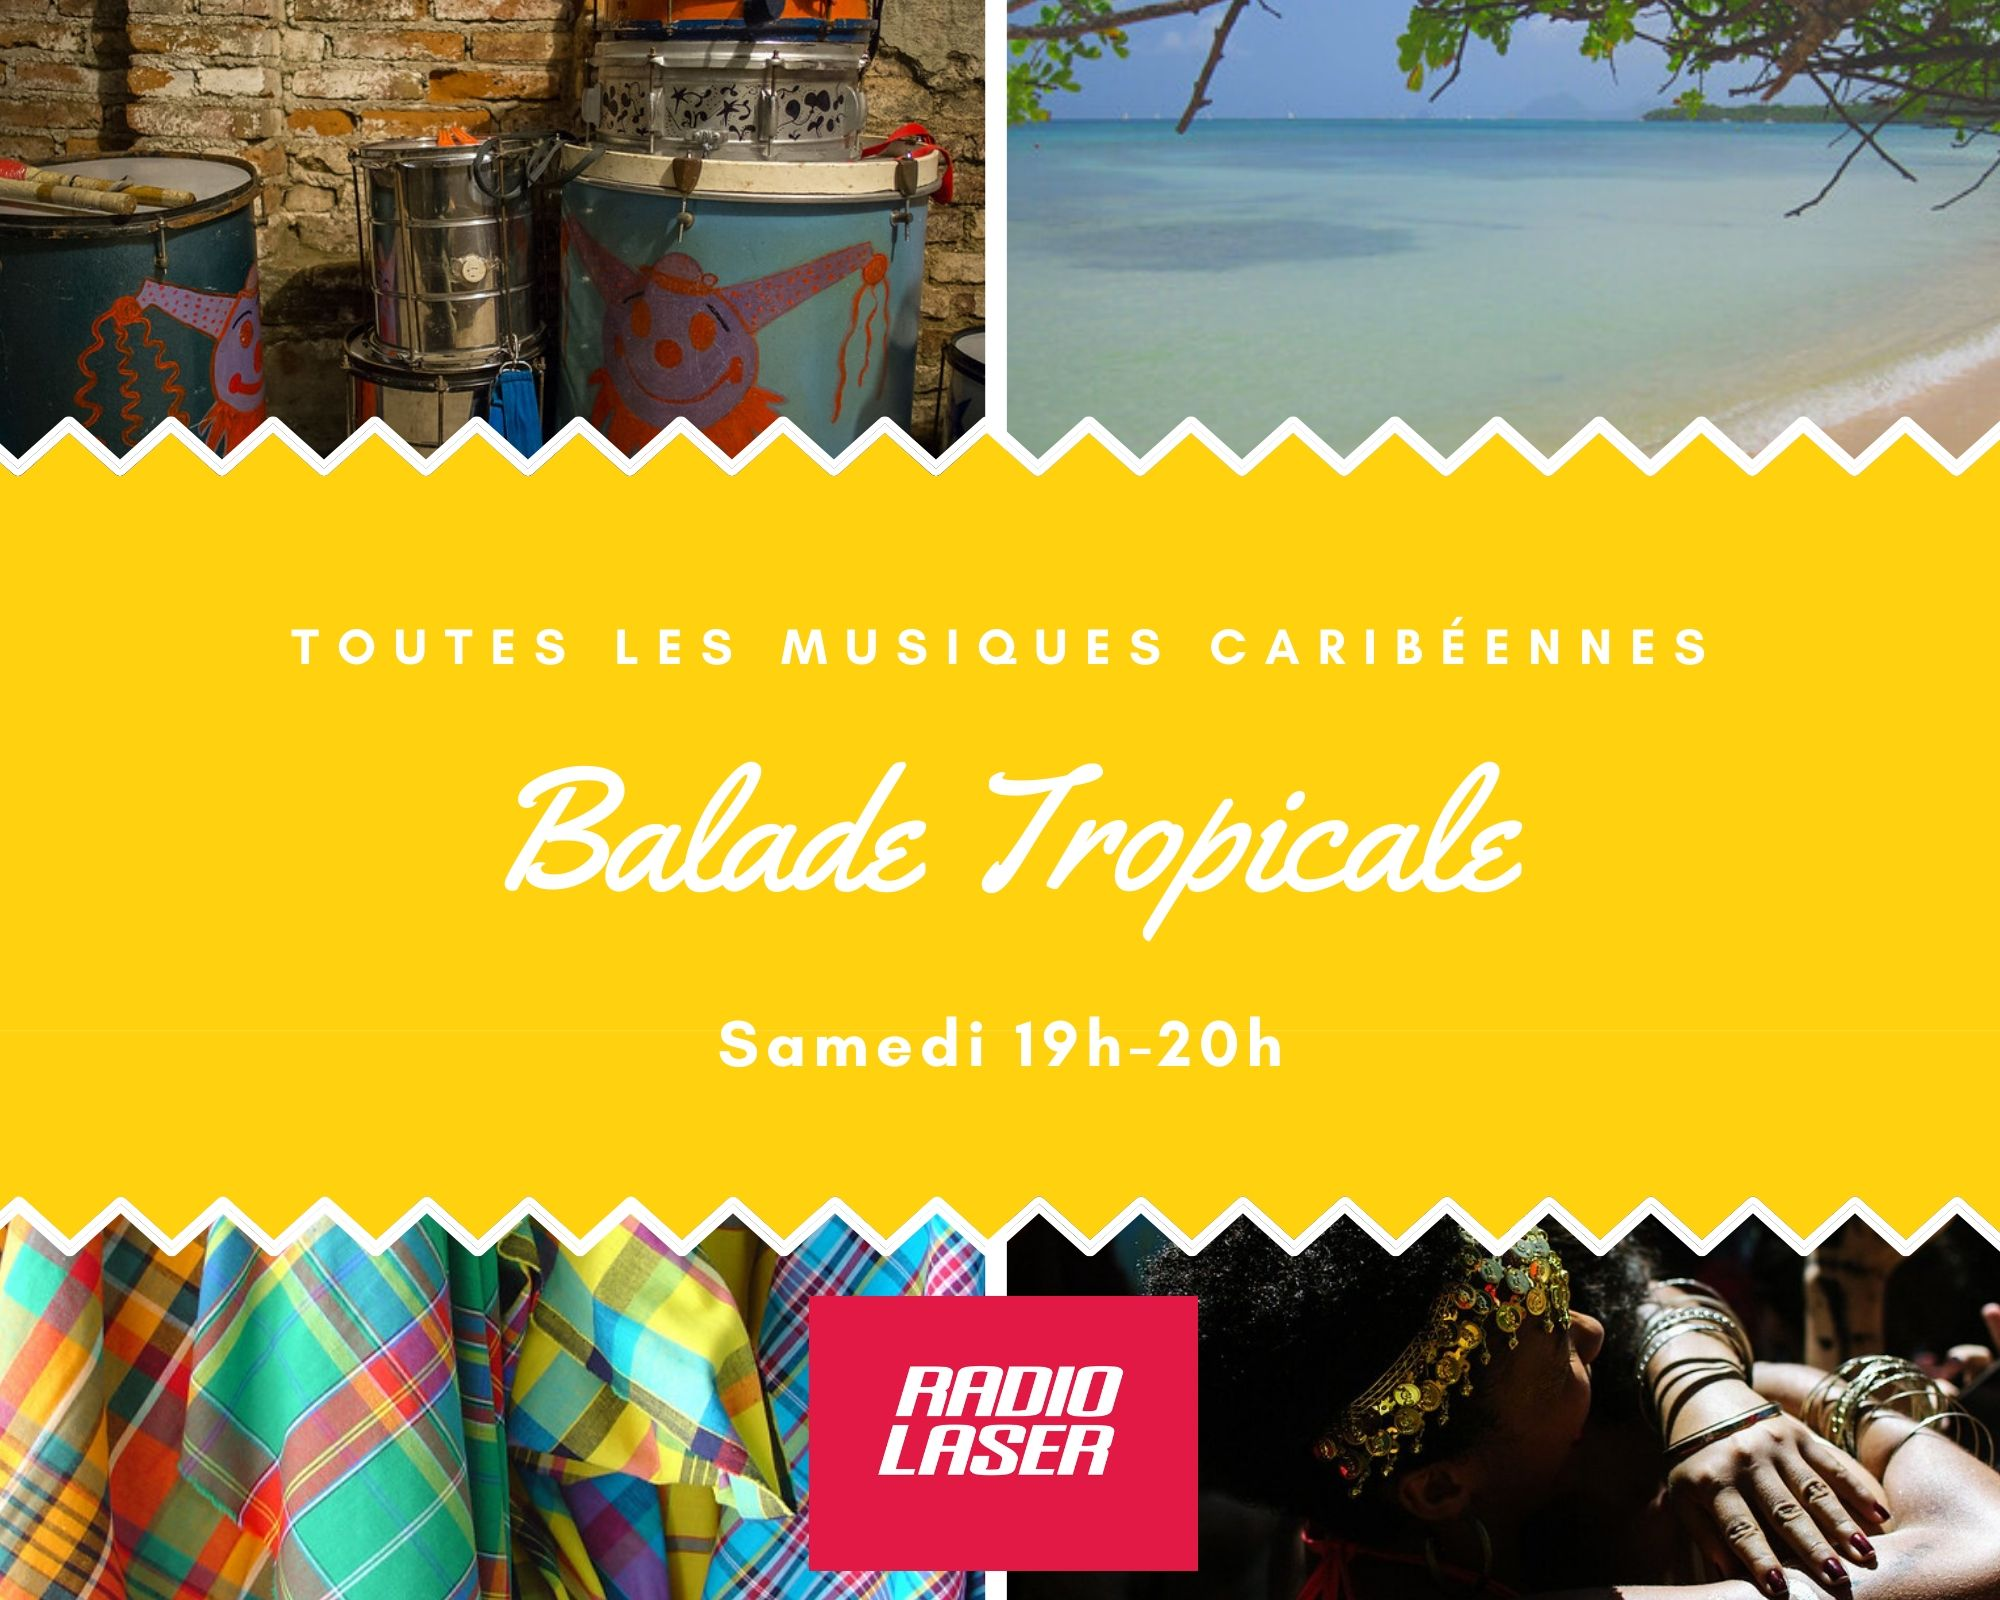 Podcast Balade Tropicale saison 02 épisode 27